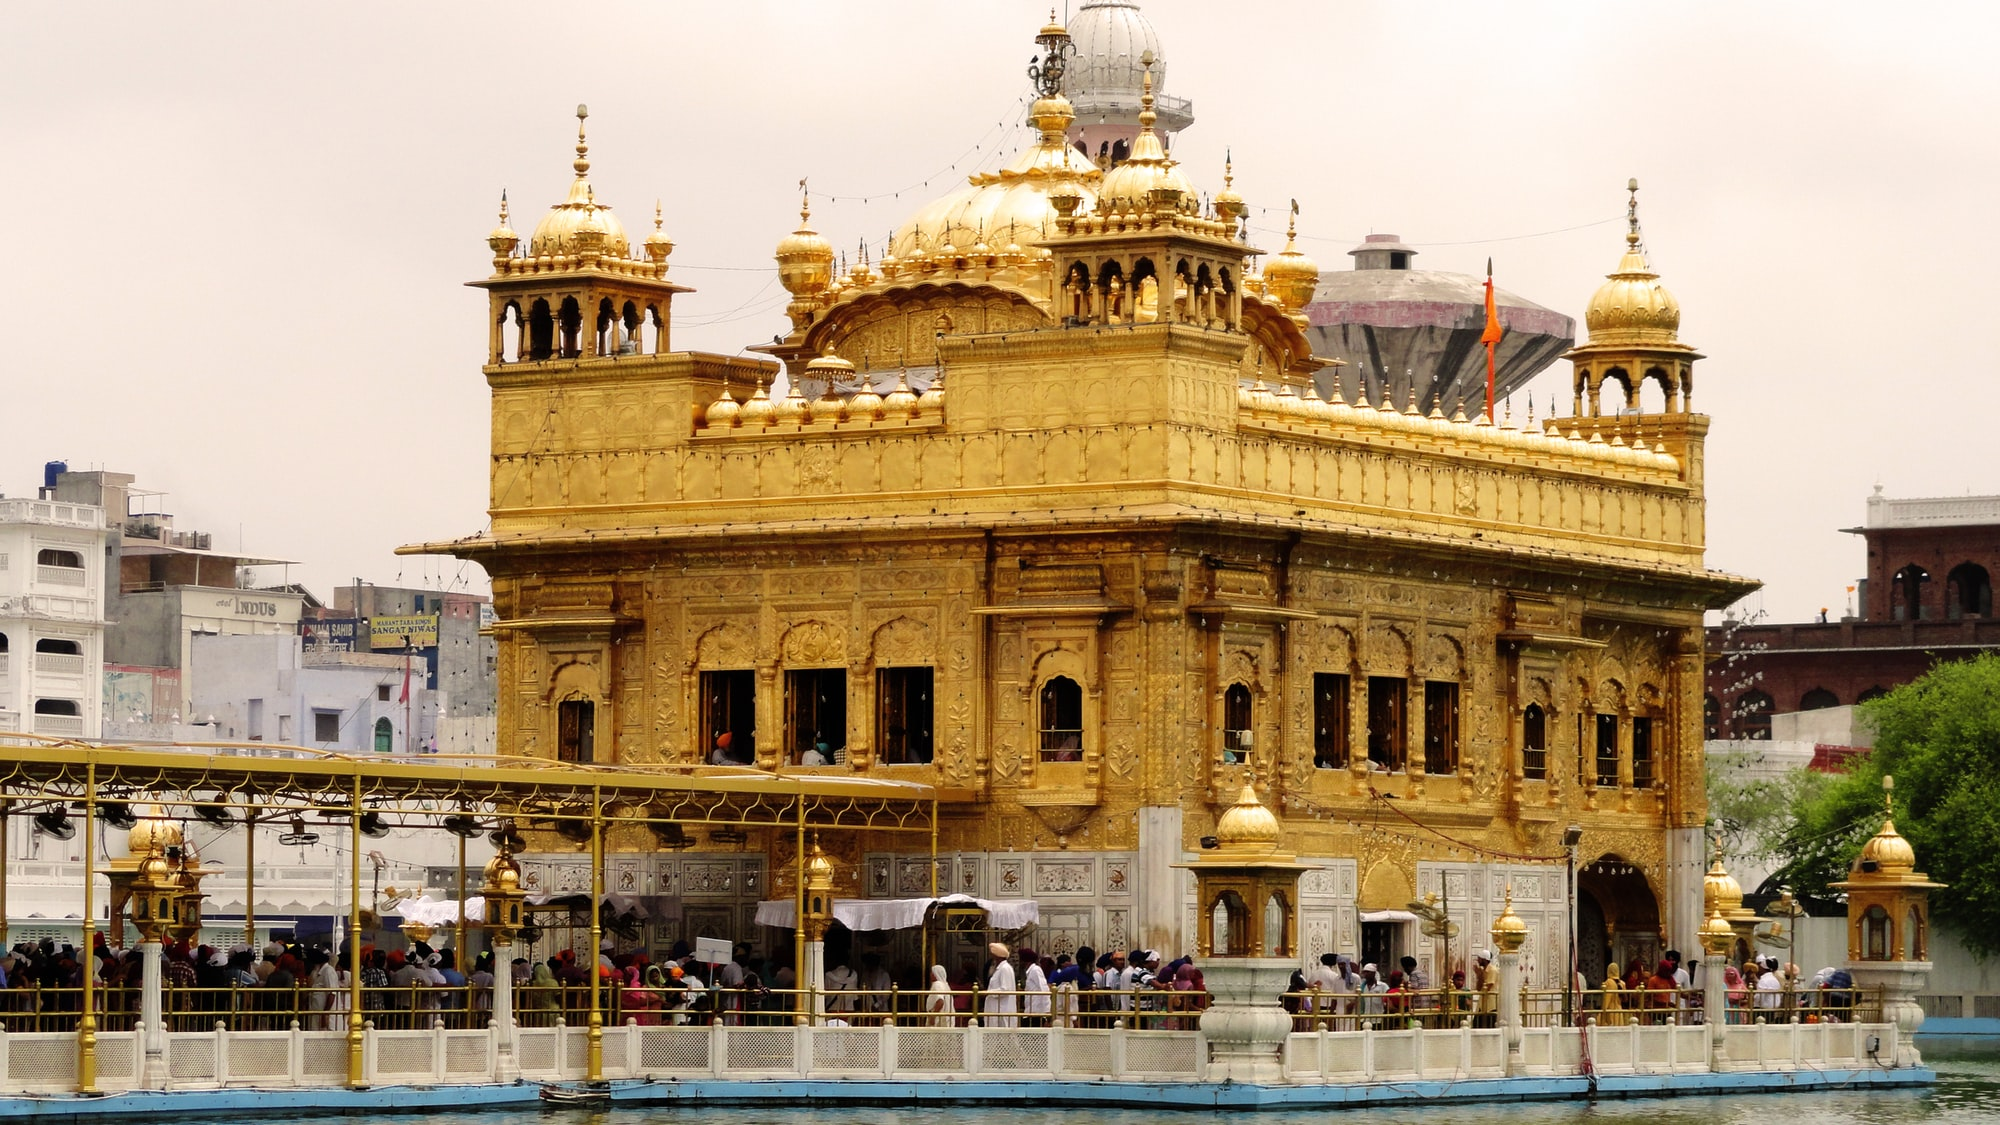 Sri Harmandir Sahib (Golden Gurudwara) (Golden Temple), one of the most sacred holy sites for Sikhs around the world, is being renovated with 160 kg gold. The gold plating is being done on the four domes at the entrance of the Gurudwara